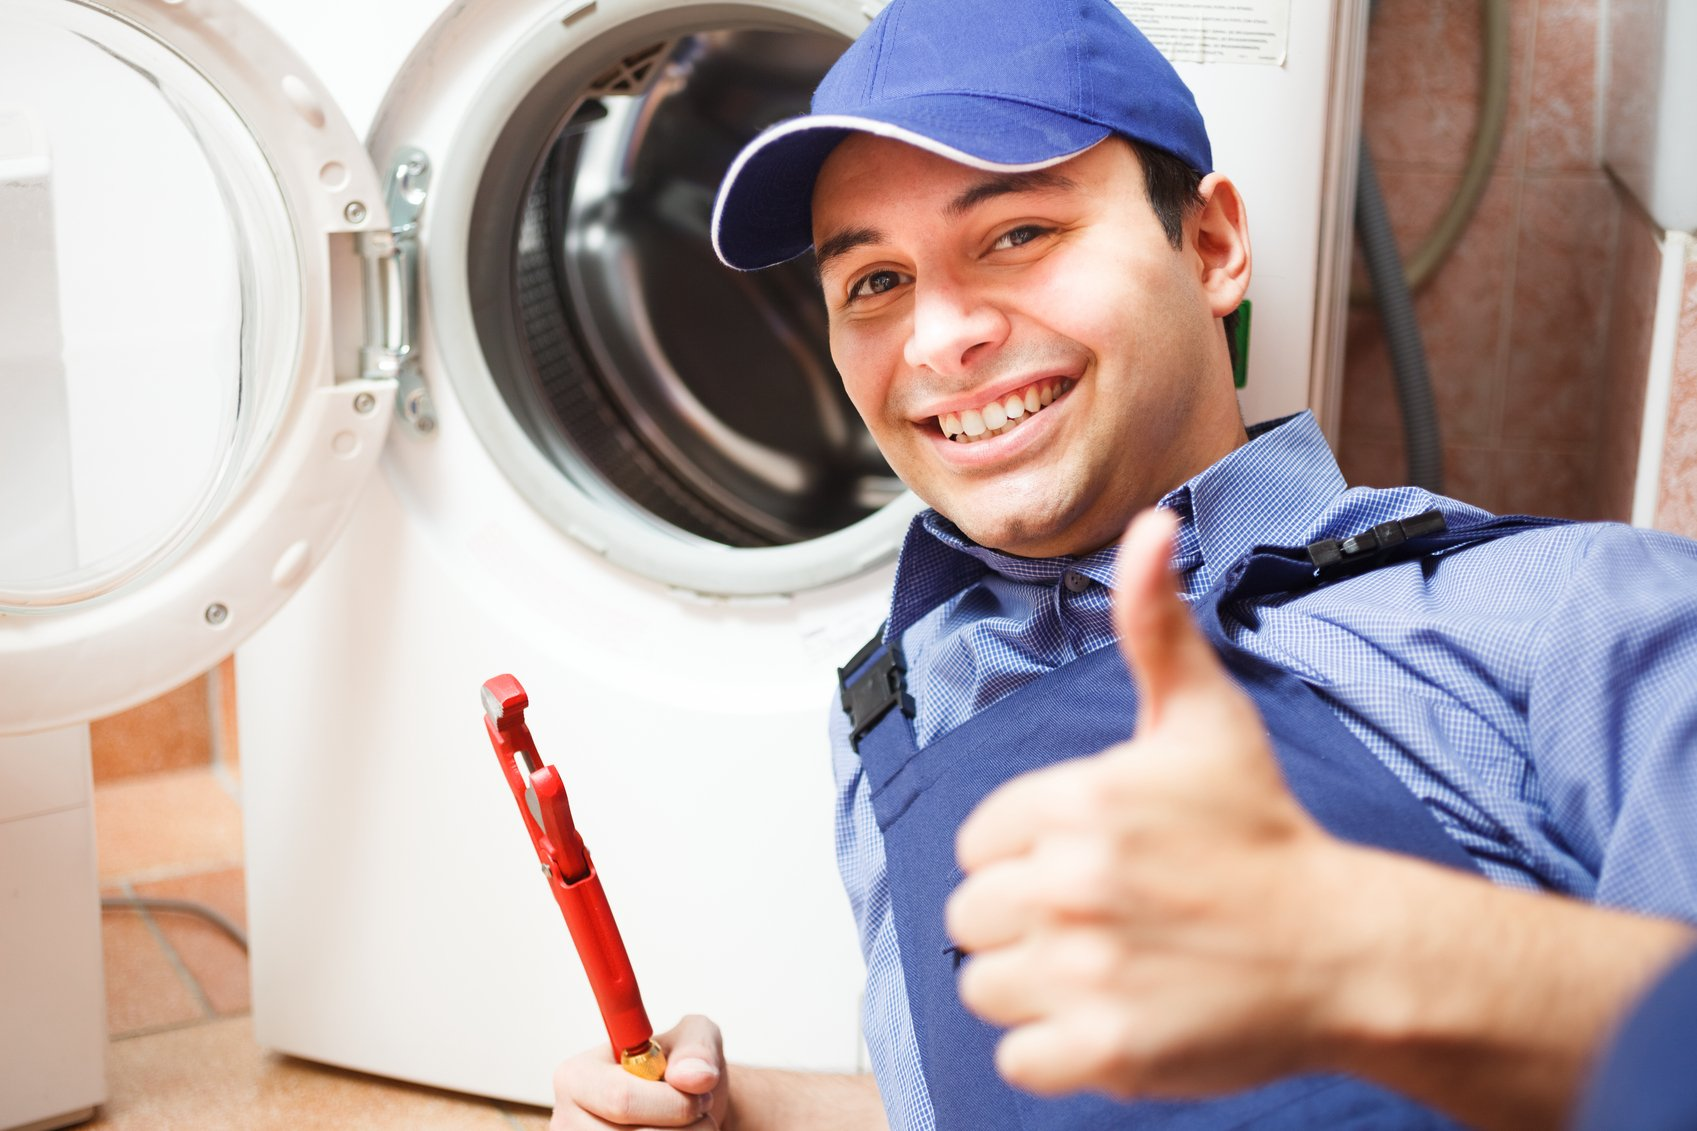 Washer Appliance Repair San Antonio, TX